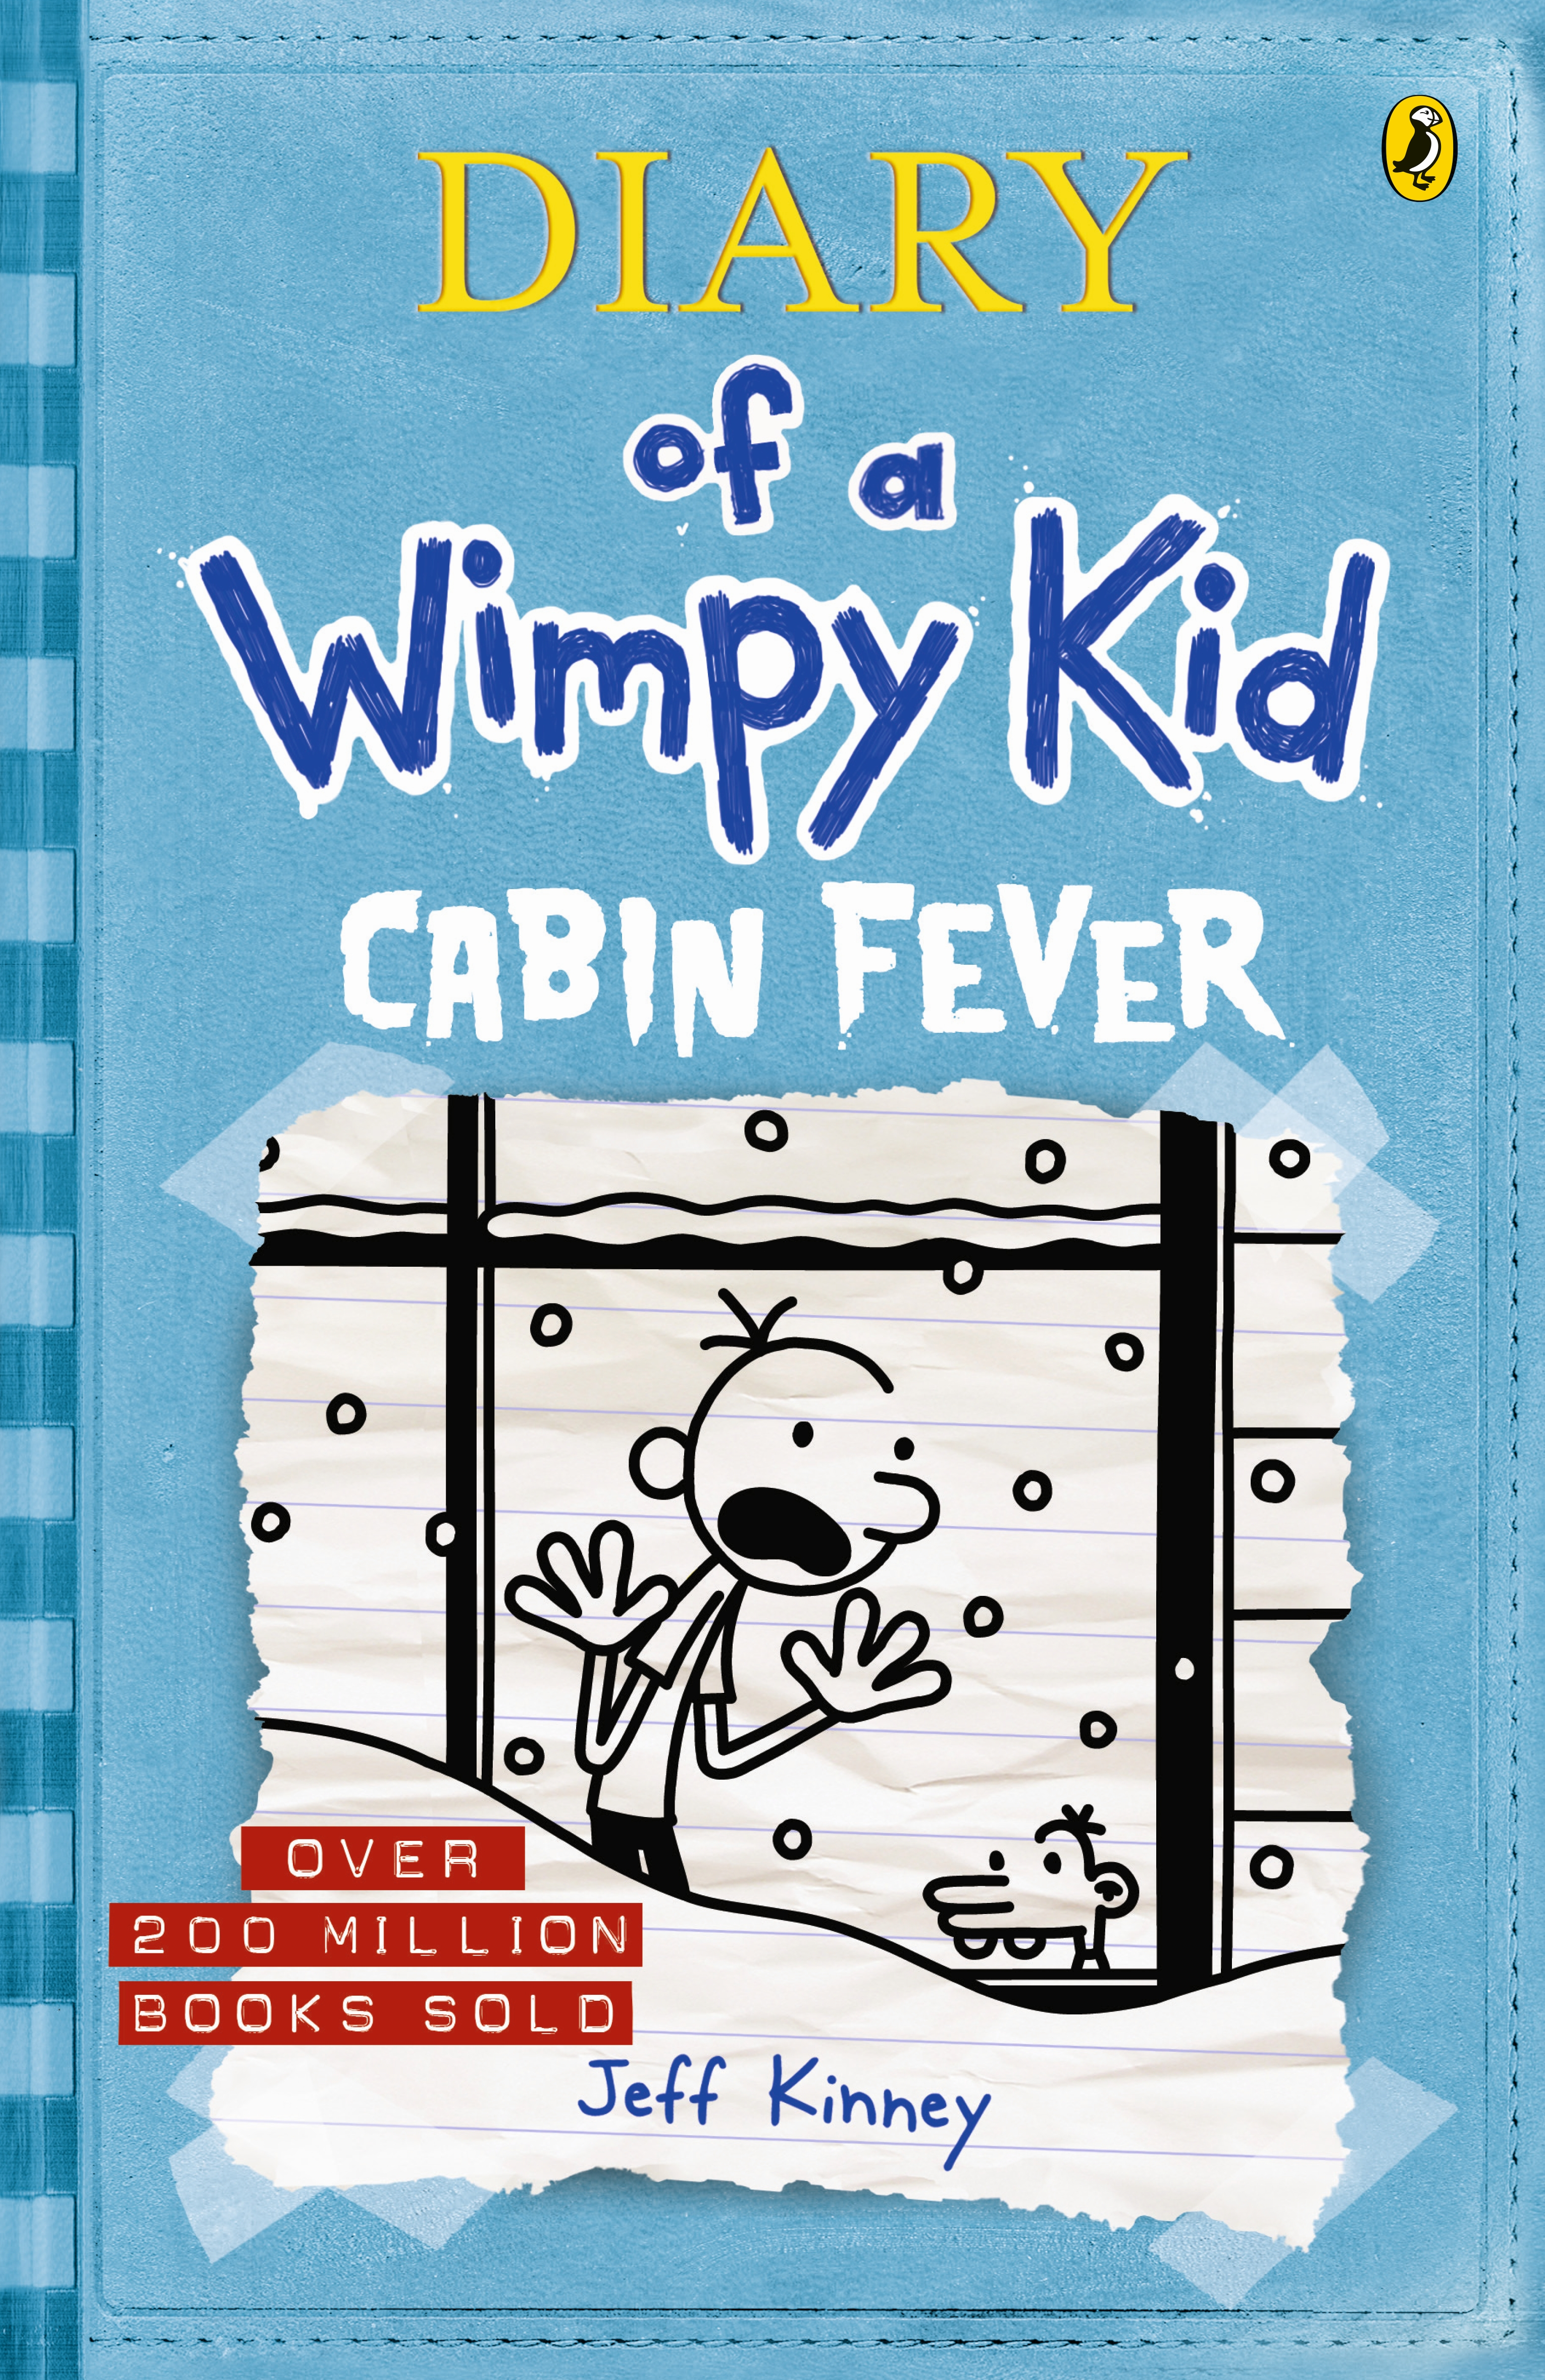 Cabin fever diary of a wimpy kid bk6 by jeff kinney penguin hi res cover cabin fever diary of a wimpy kid solutioingenieria Images